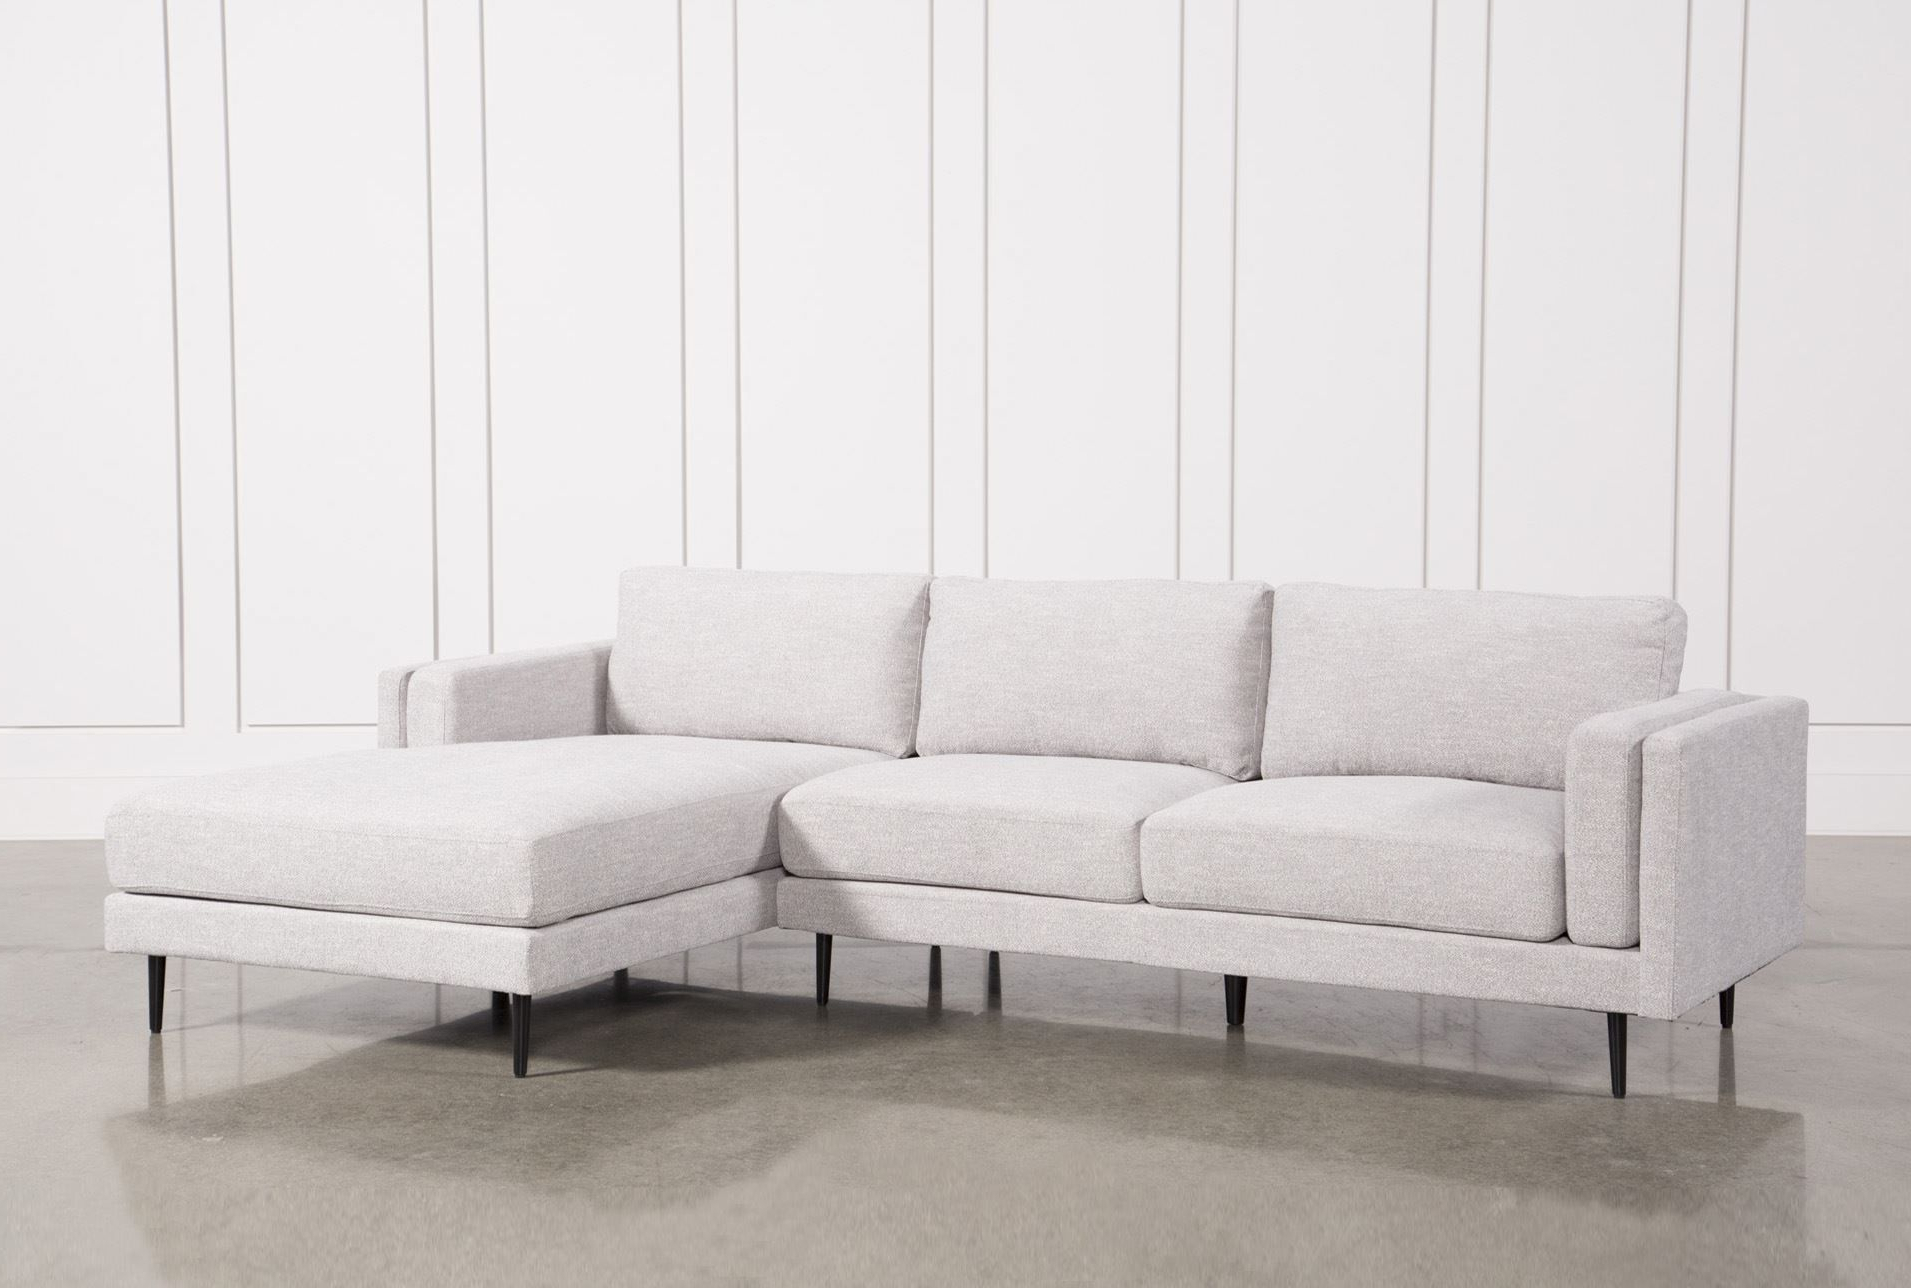 Lucy Dark Grey 2 Piece Sleeper Sectionals With Raf Chaise Intended For Popular Aquarius Light Grey 2 Piece Sectional W/raf Chaise (View 11 of 20)